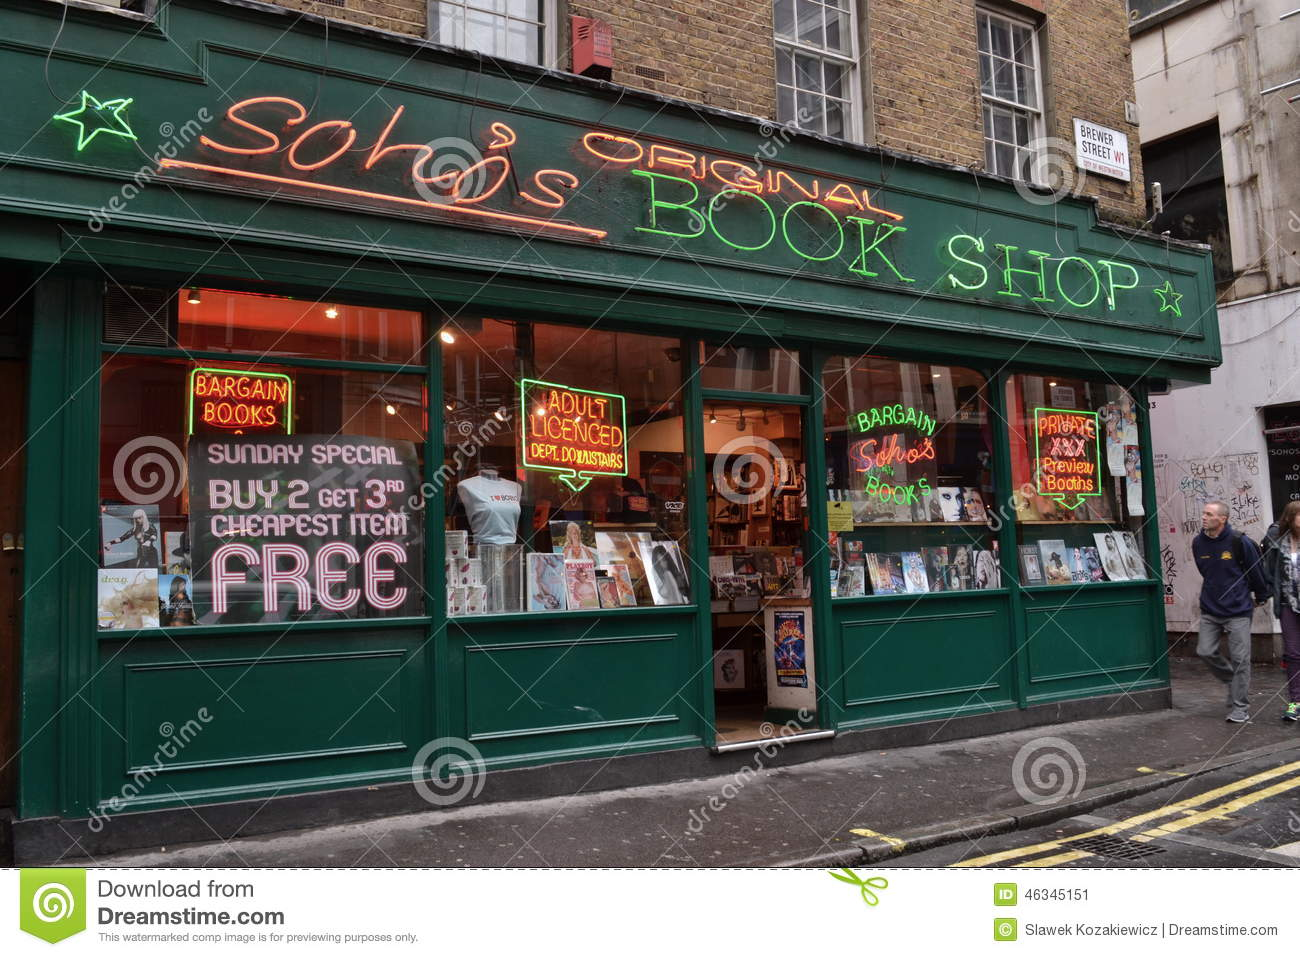 Adult sex stores in london